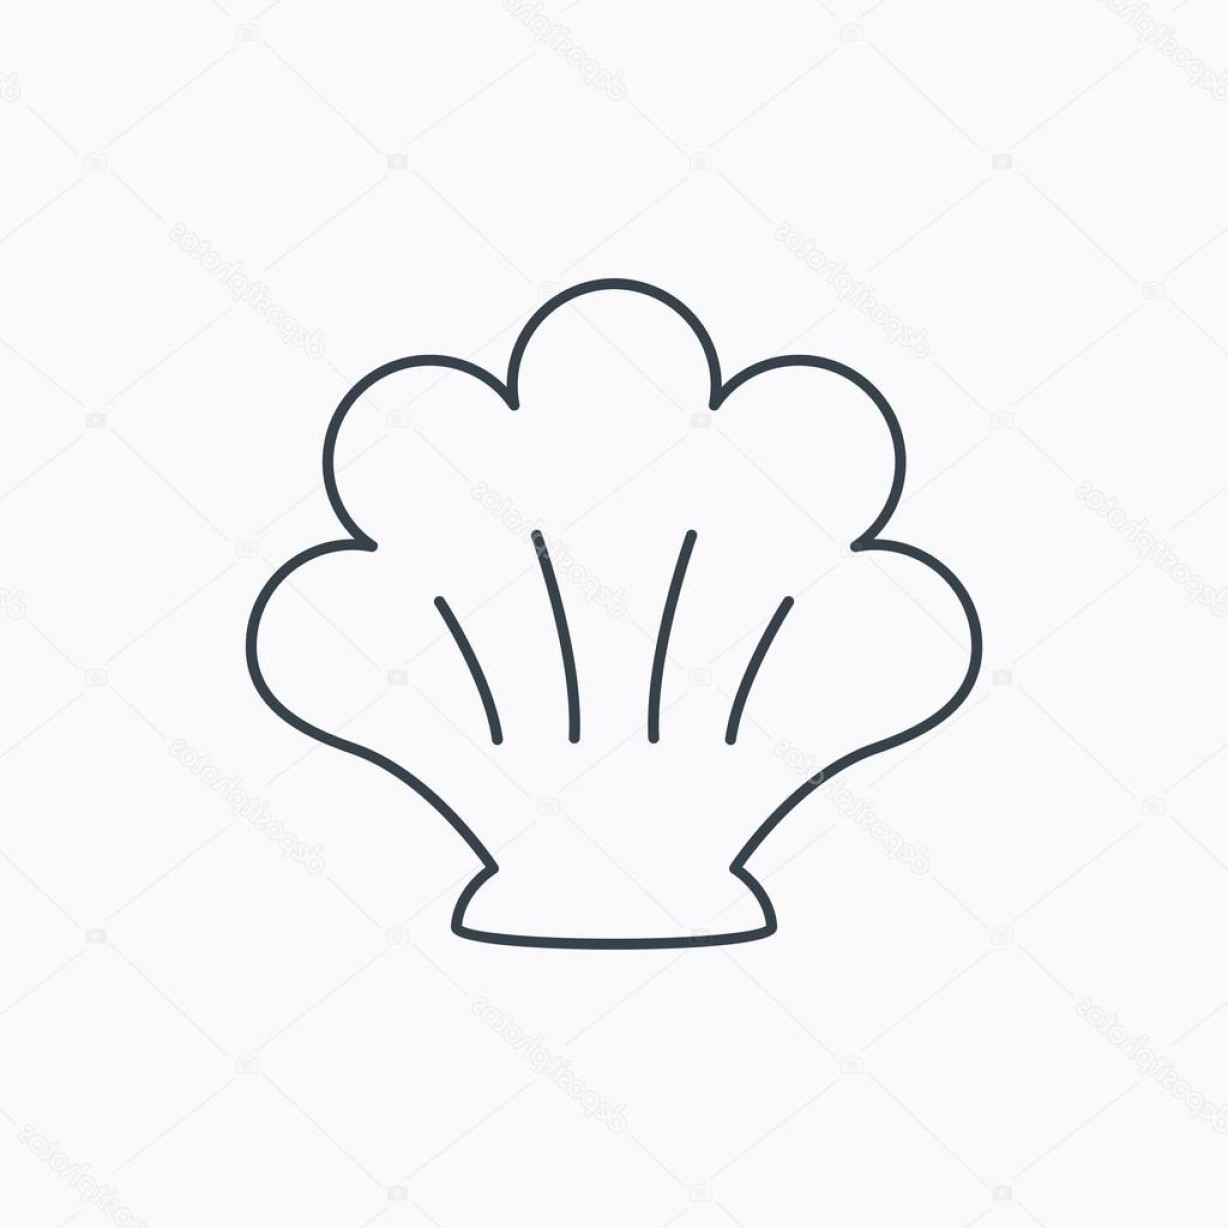 Shell Vector Icons: Stock Illustration Sea Shell Icon Seashell Sign